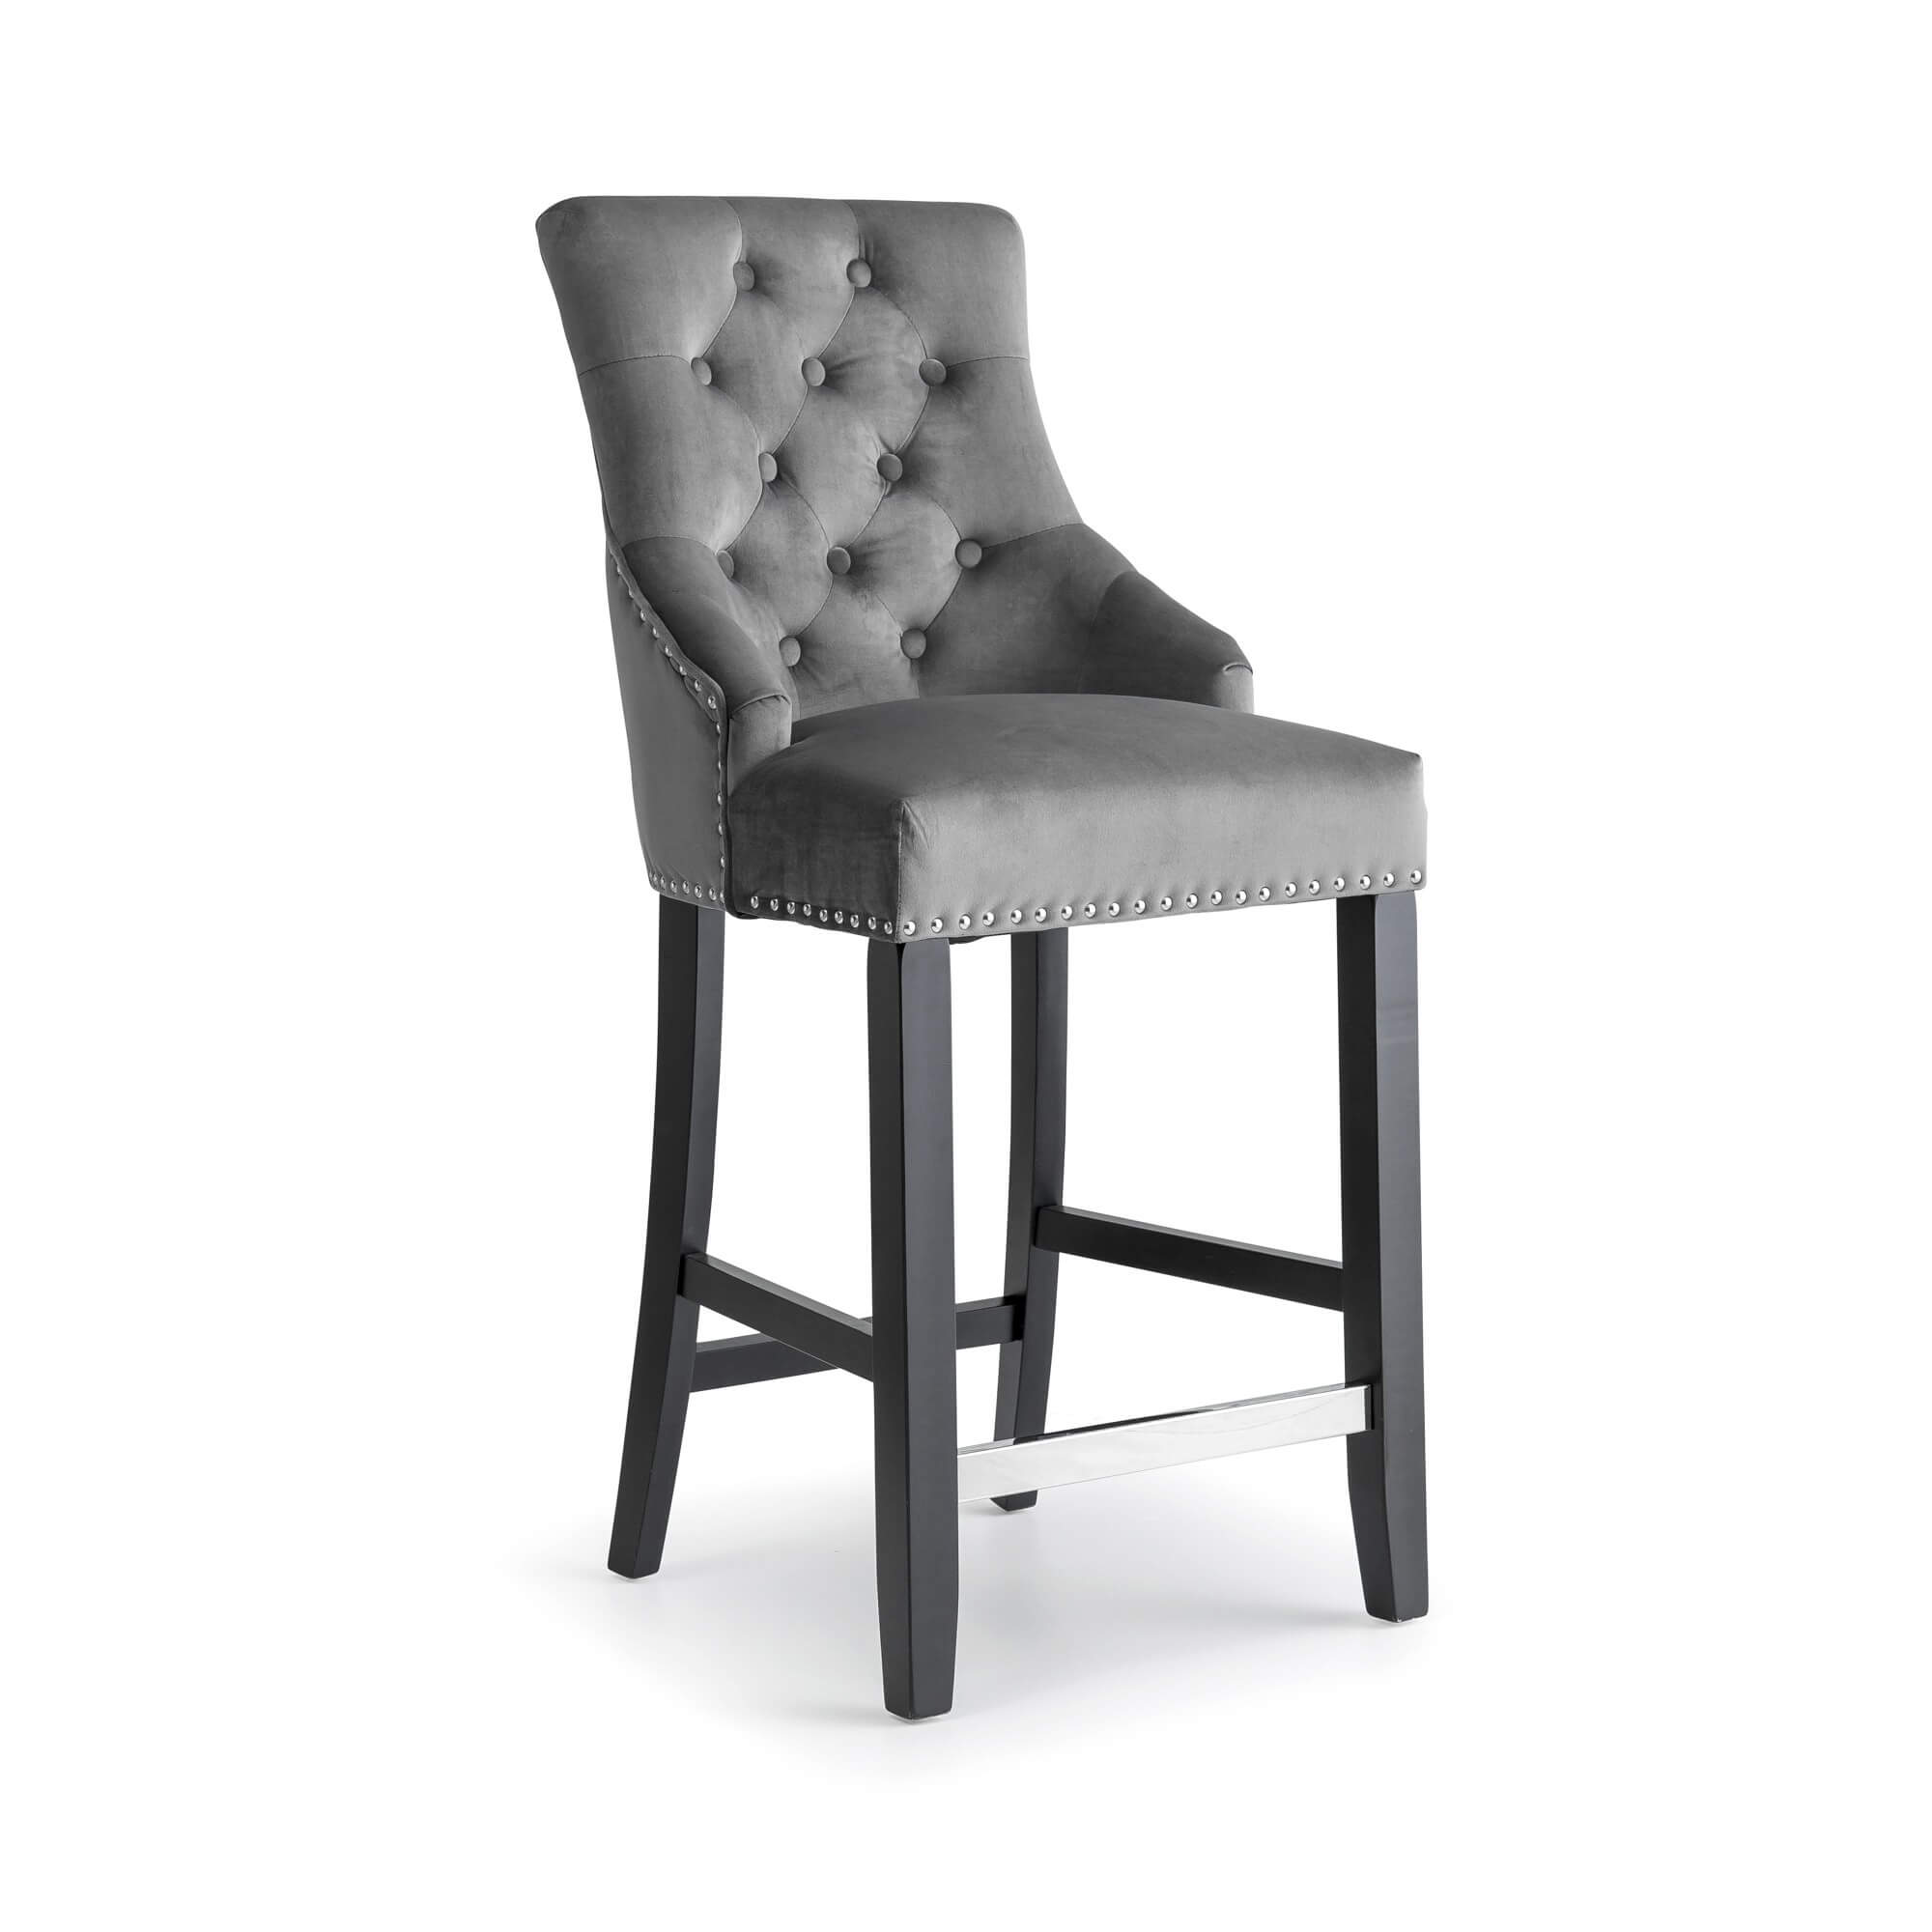 Grey Brushed Velvet Bar Stool with Polished Steel Footrest